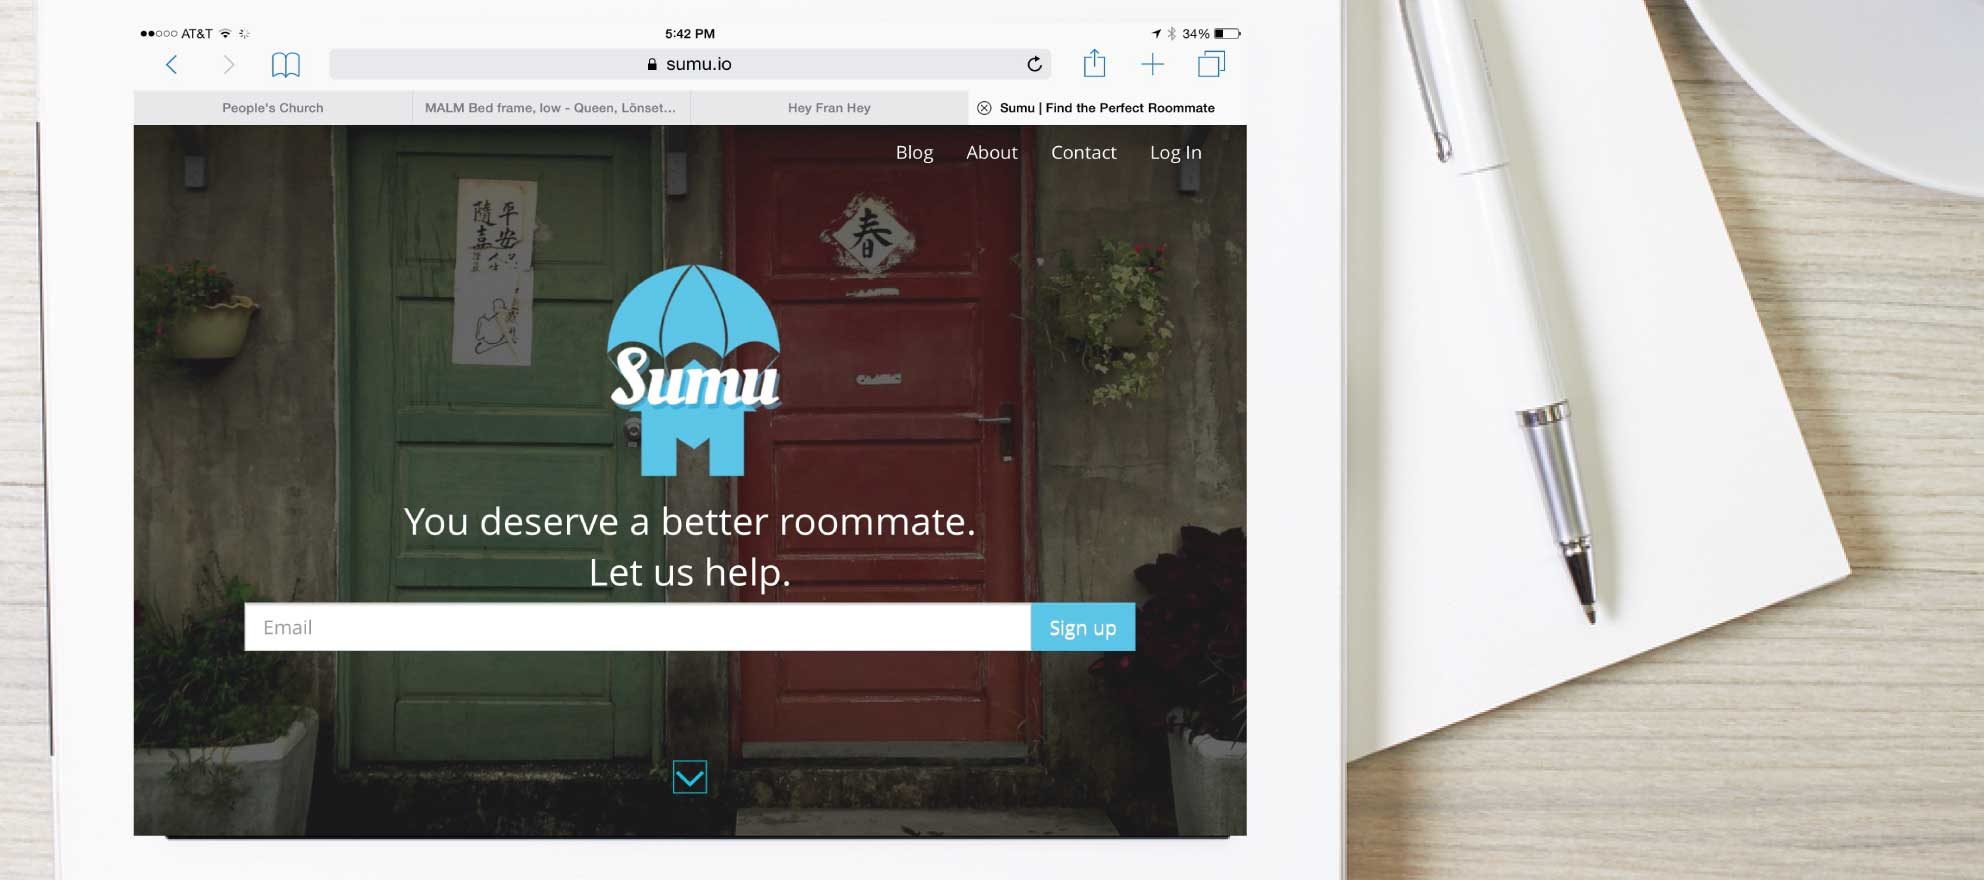 Sumu takes uncertainty out of finding a roommate in Boston